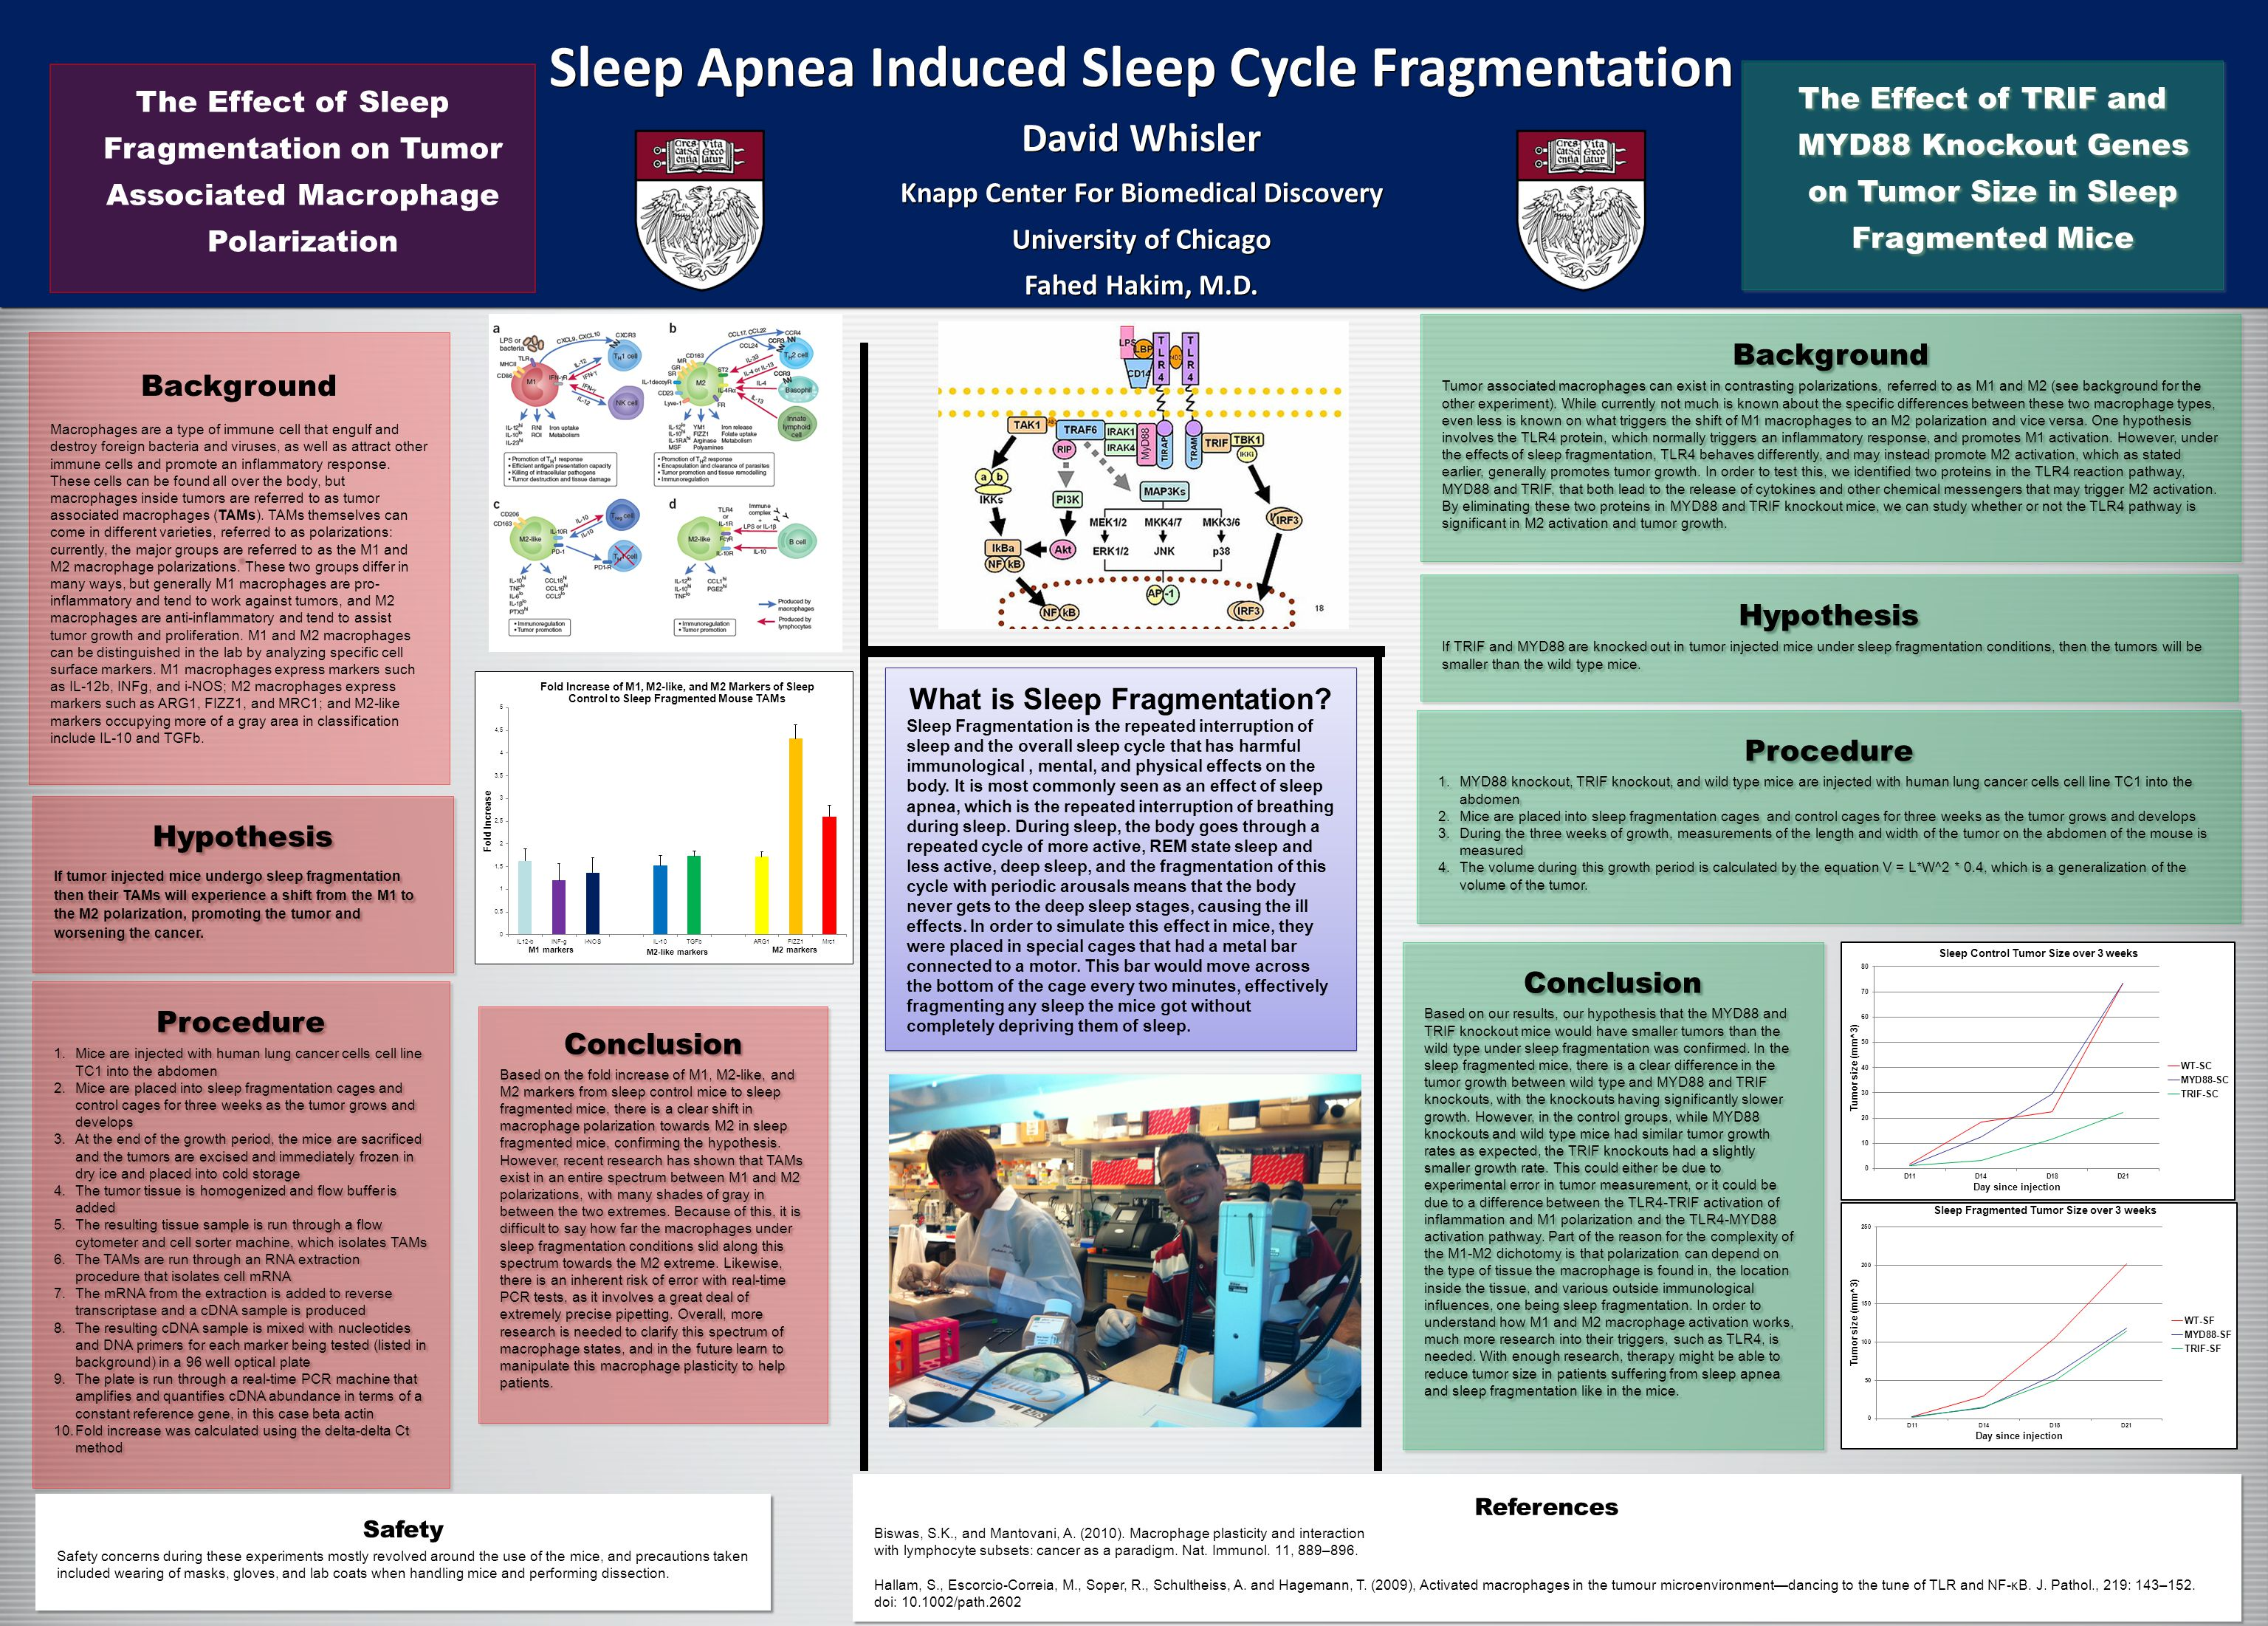 Sleep Apnea Induced Sleep Cycle Fragmentation David Whisler Knapp Center For Biomedical Discovery University of Chicago Fahed Hakim, M.D.